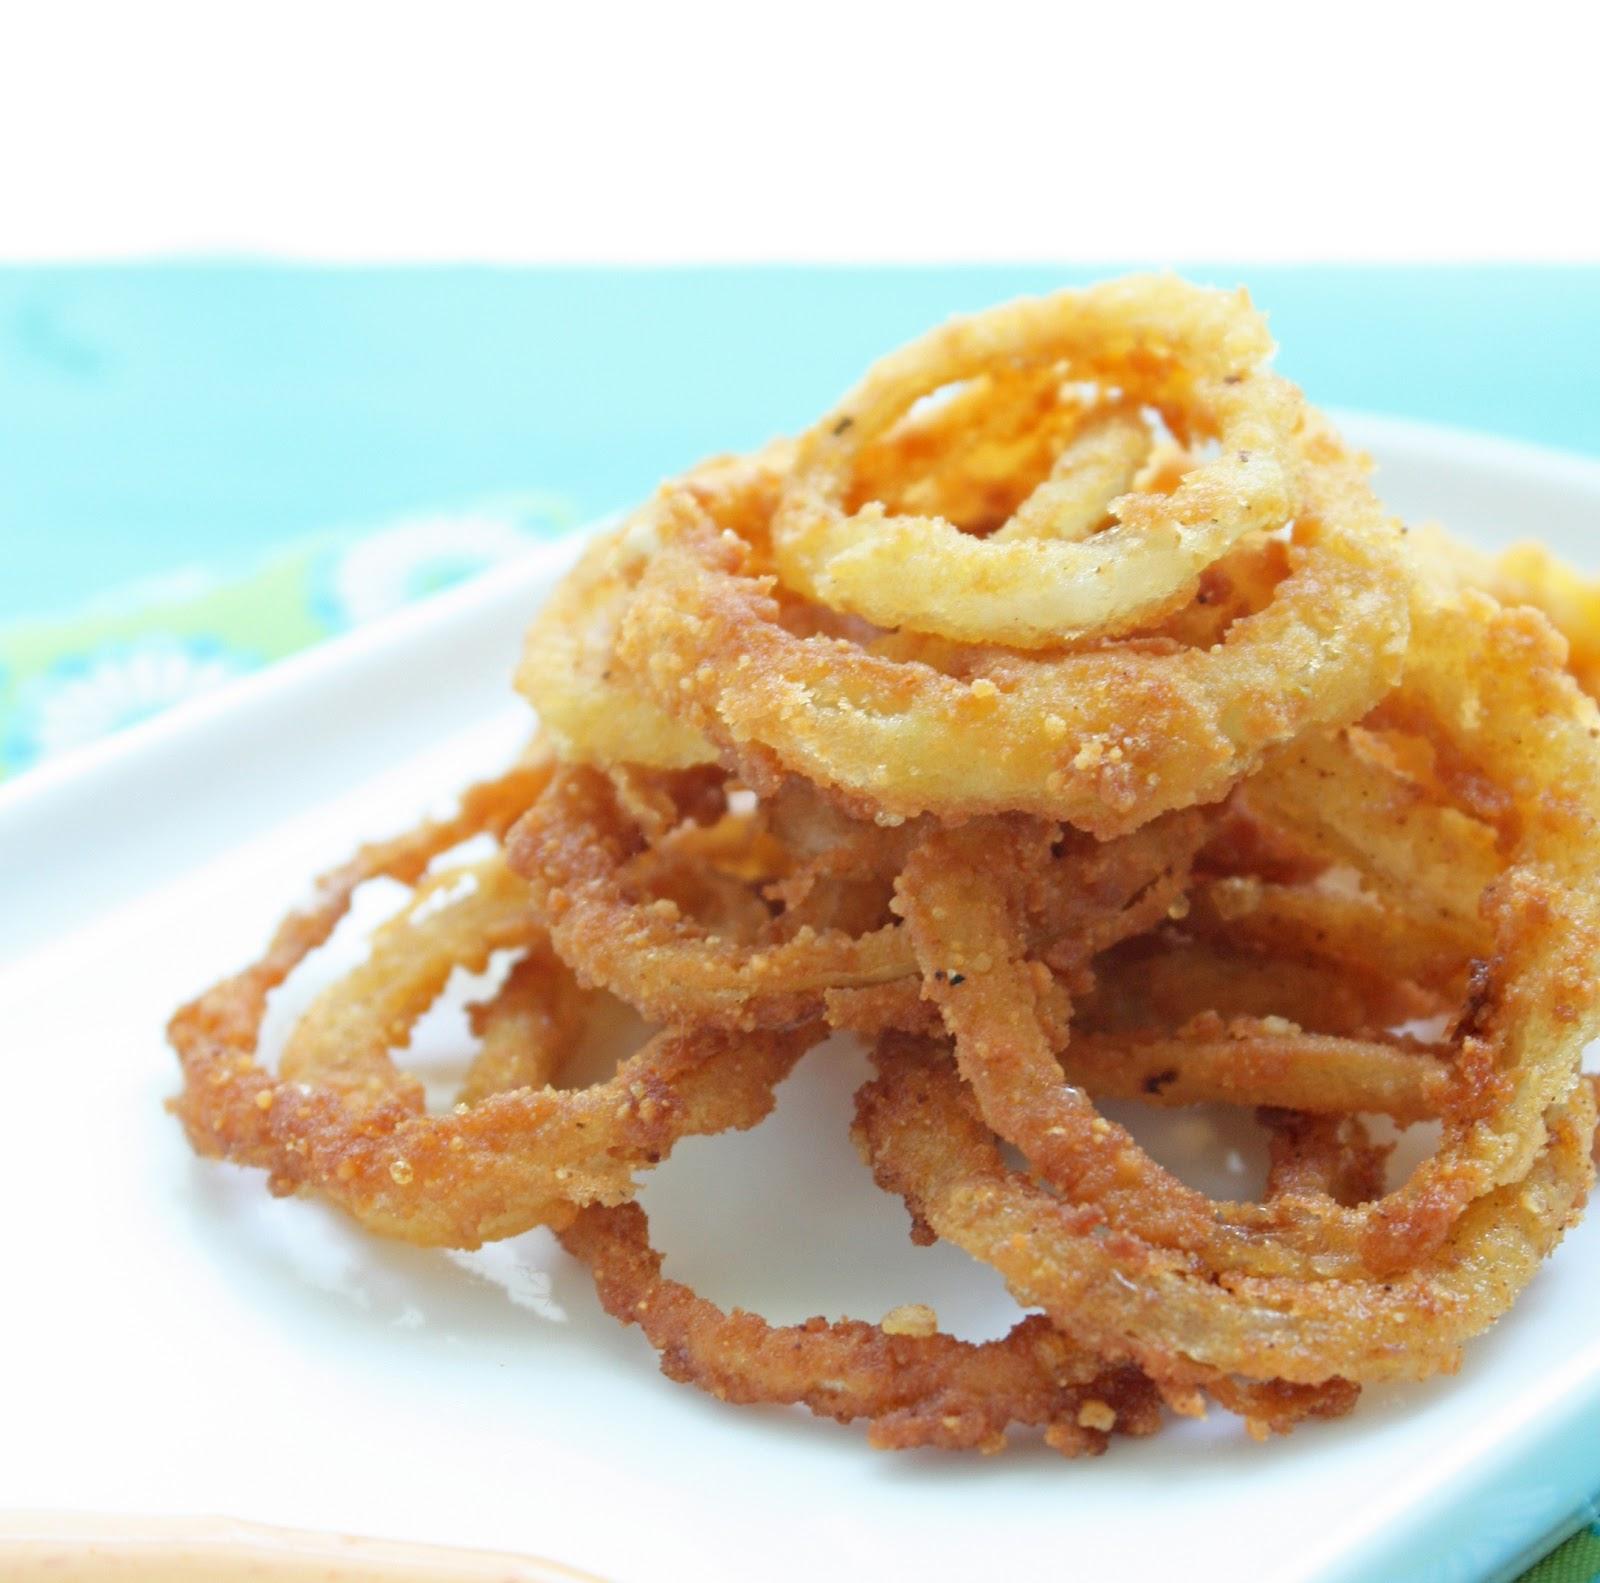 ve really been missing onion rings since I went low carb.